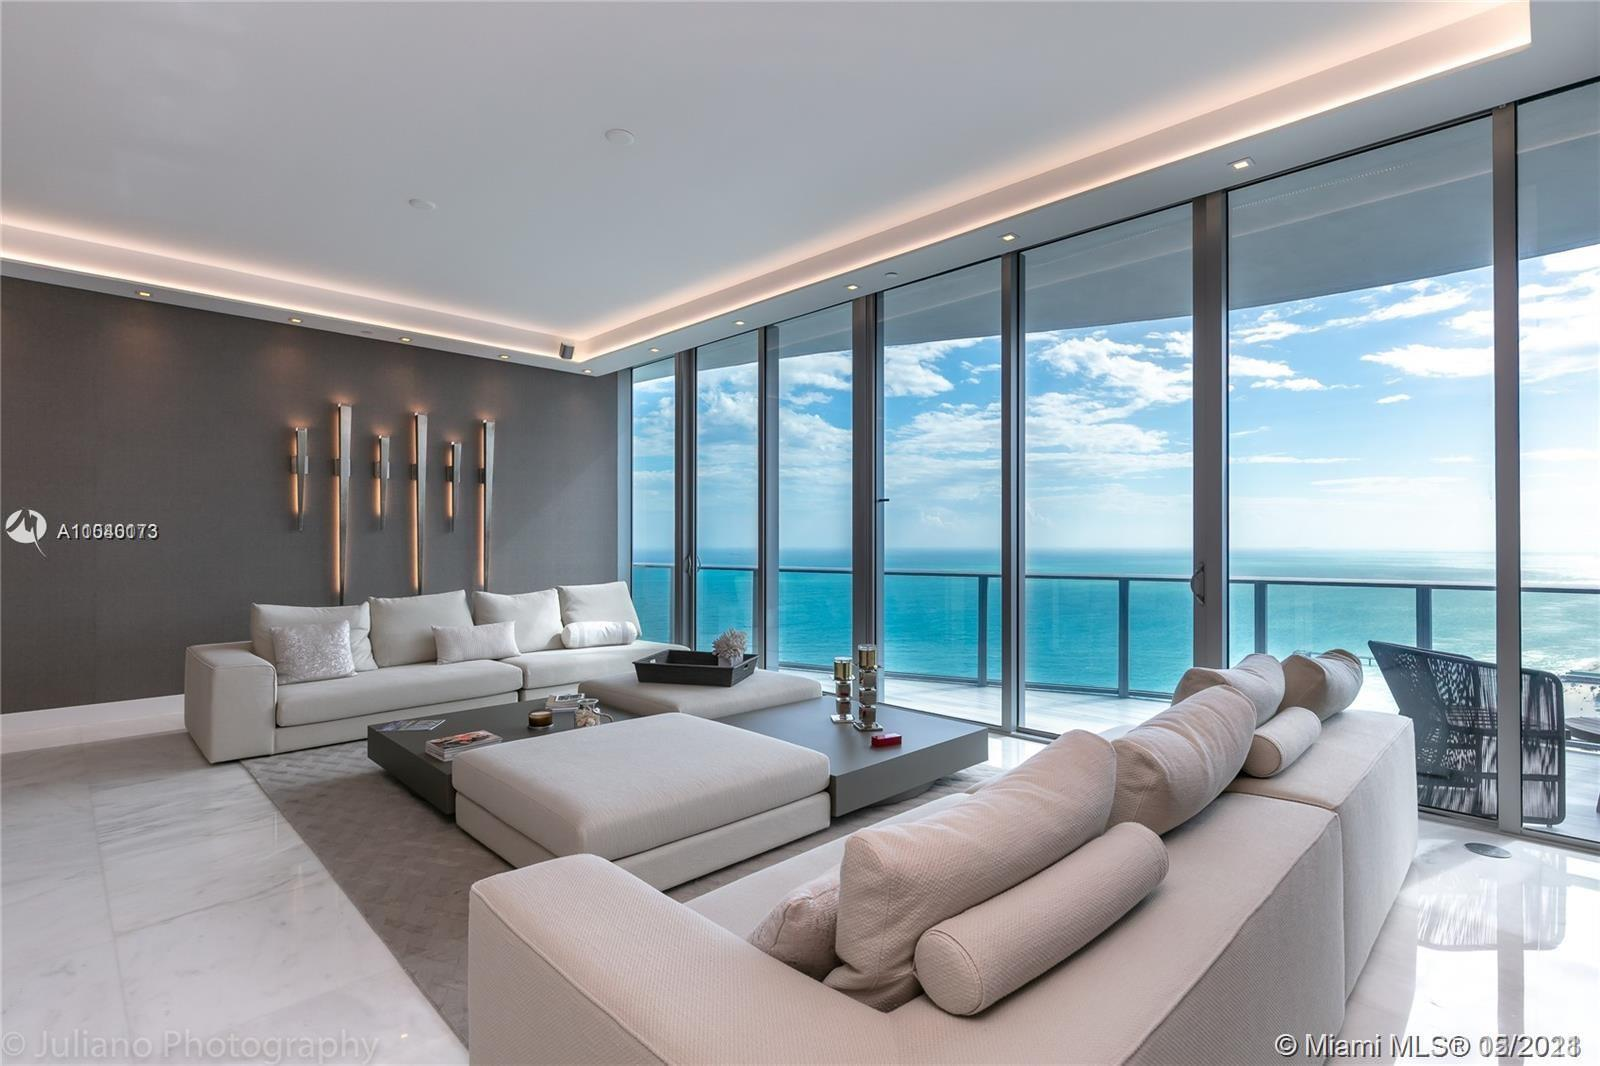 """Enjoy Ocean & Sunset Views from this Elegant Residence designed by """"Lineaire Designs"""". Private eleva"""